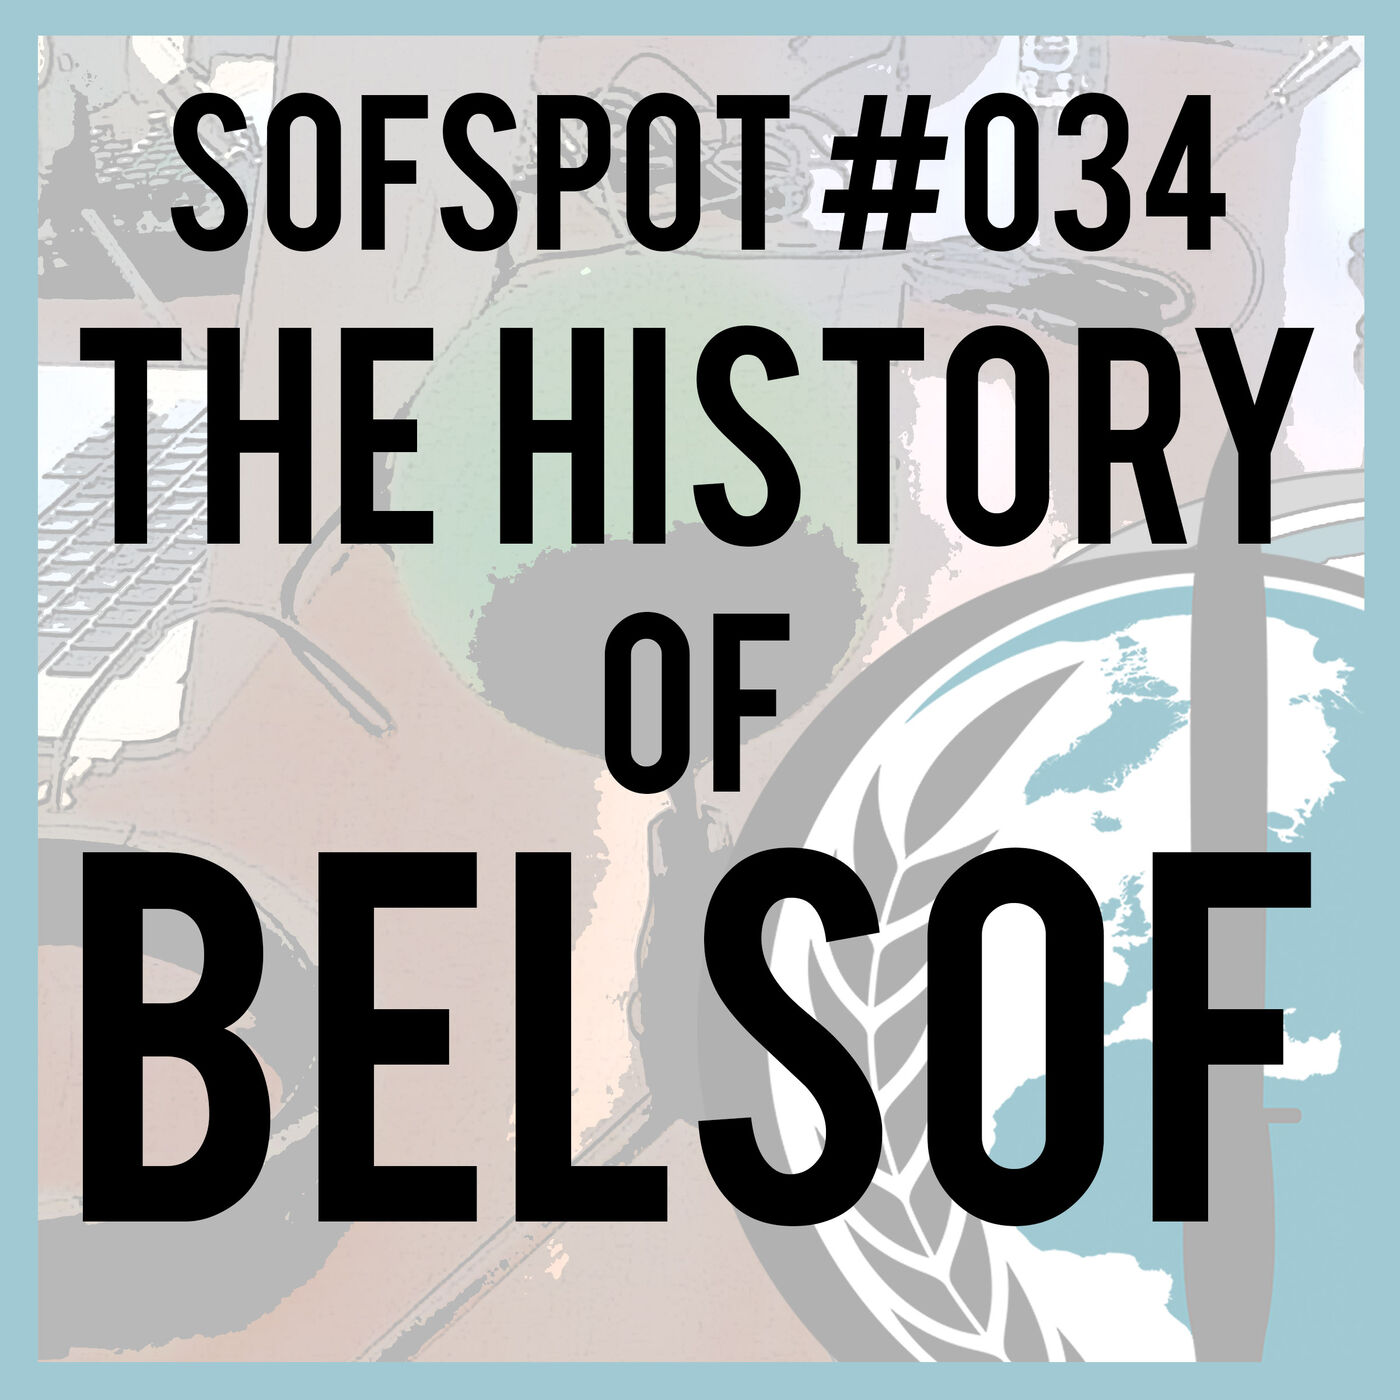 The History of BELSOF